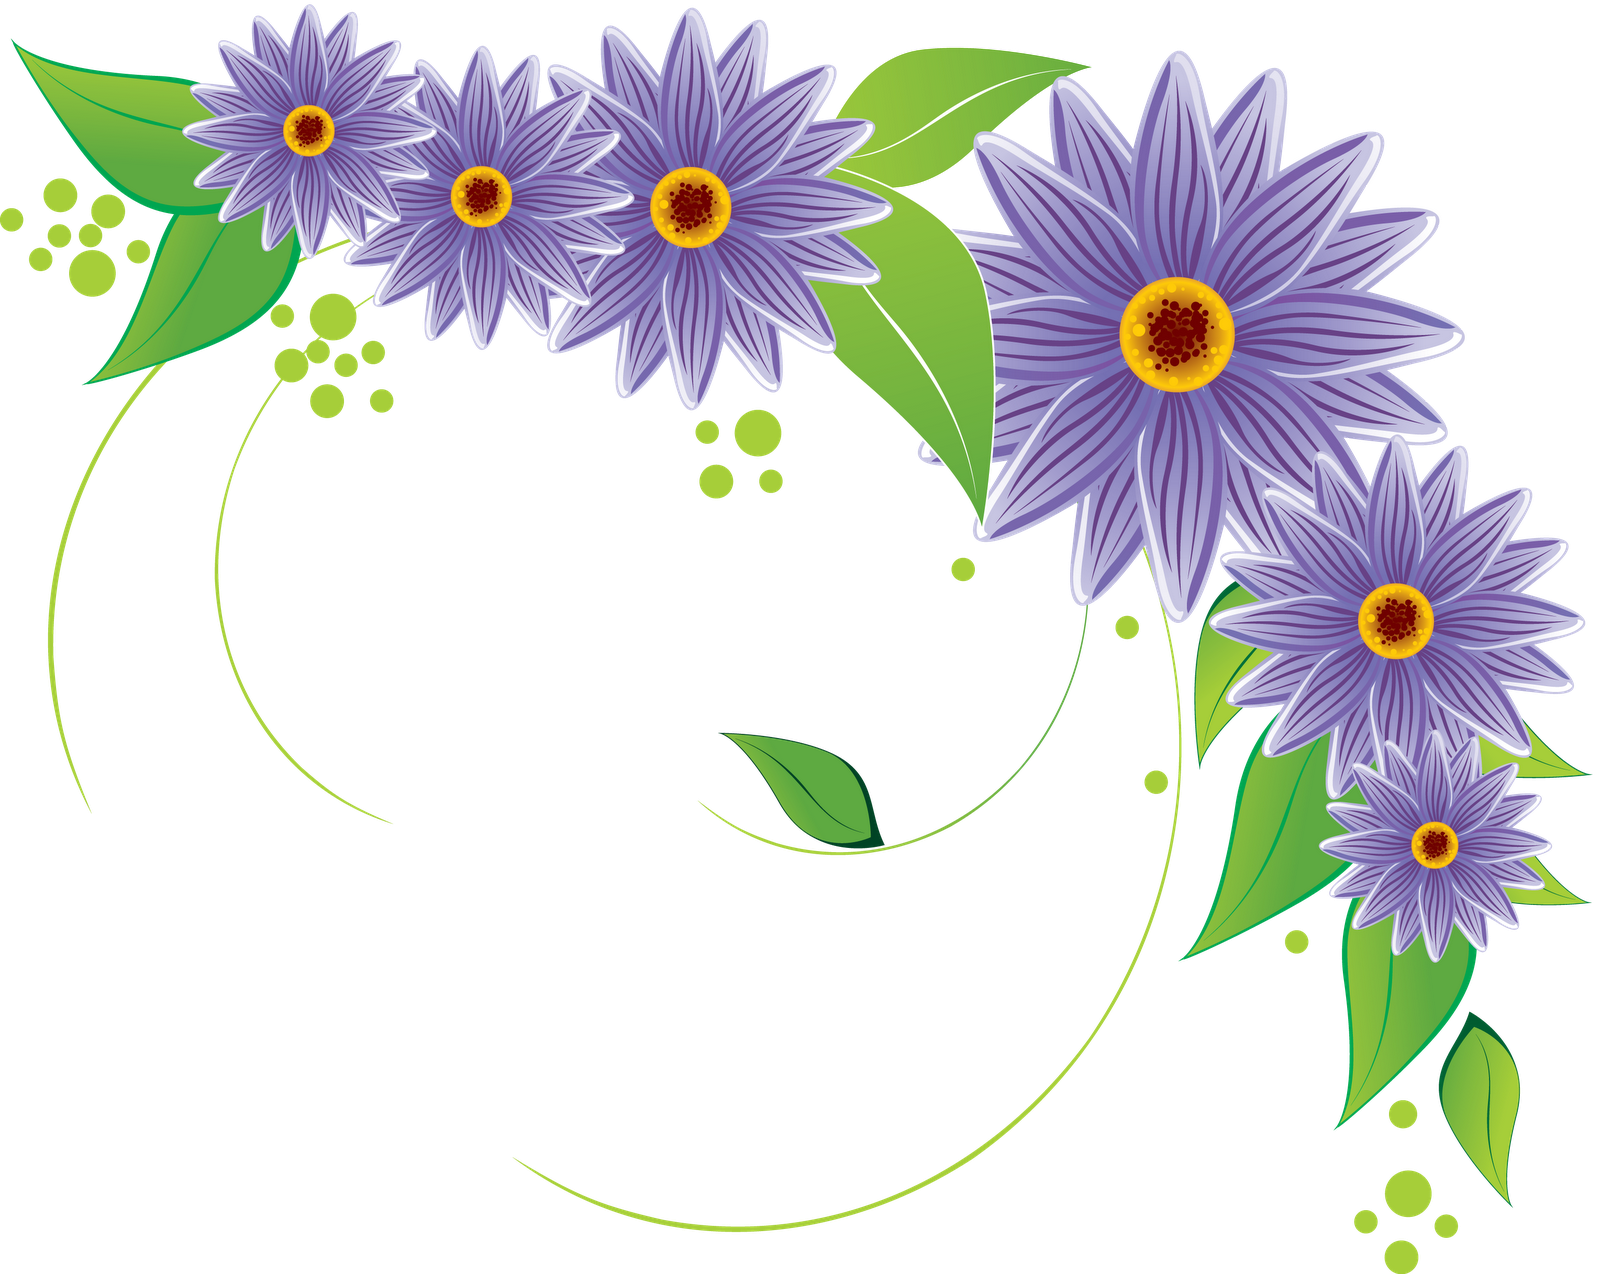 flower vectors various (12) - Flowers Vectors PNG